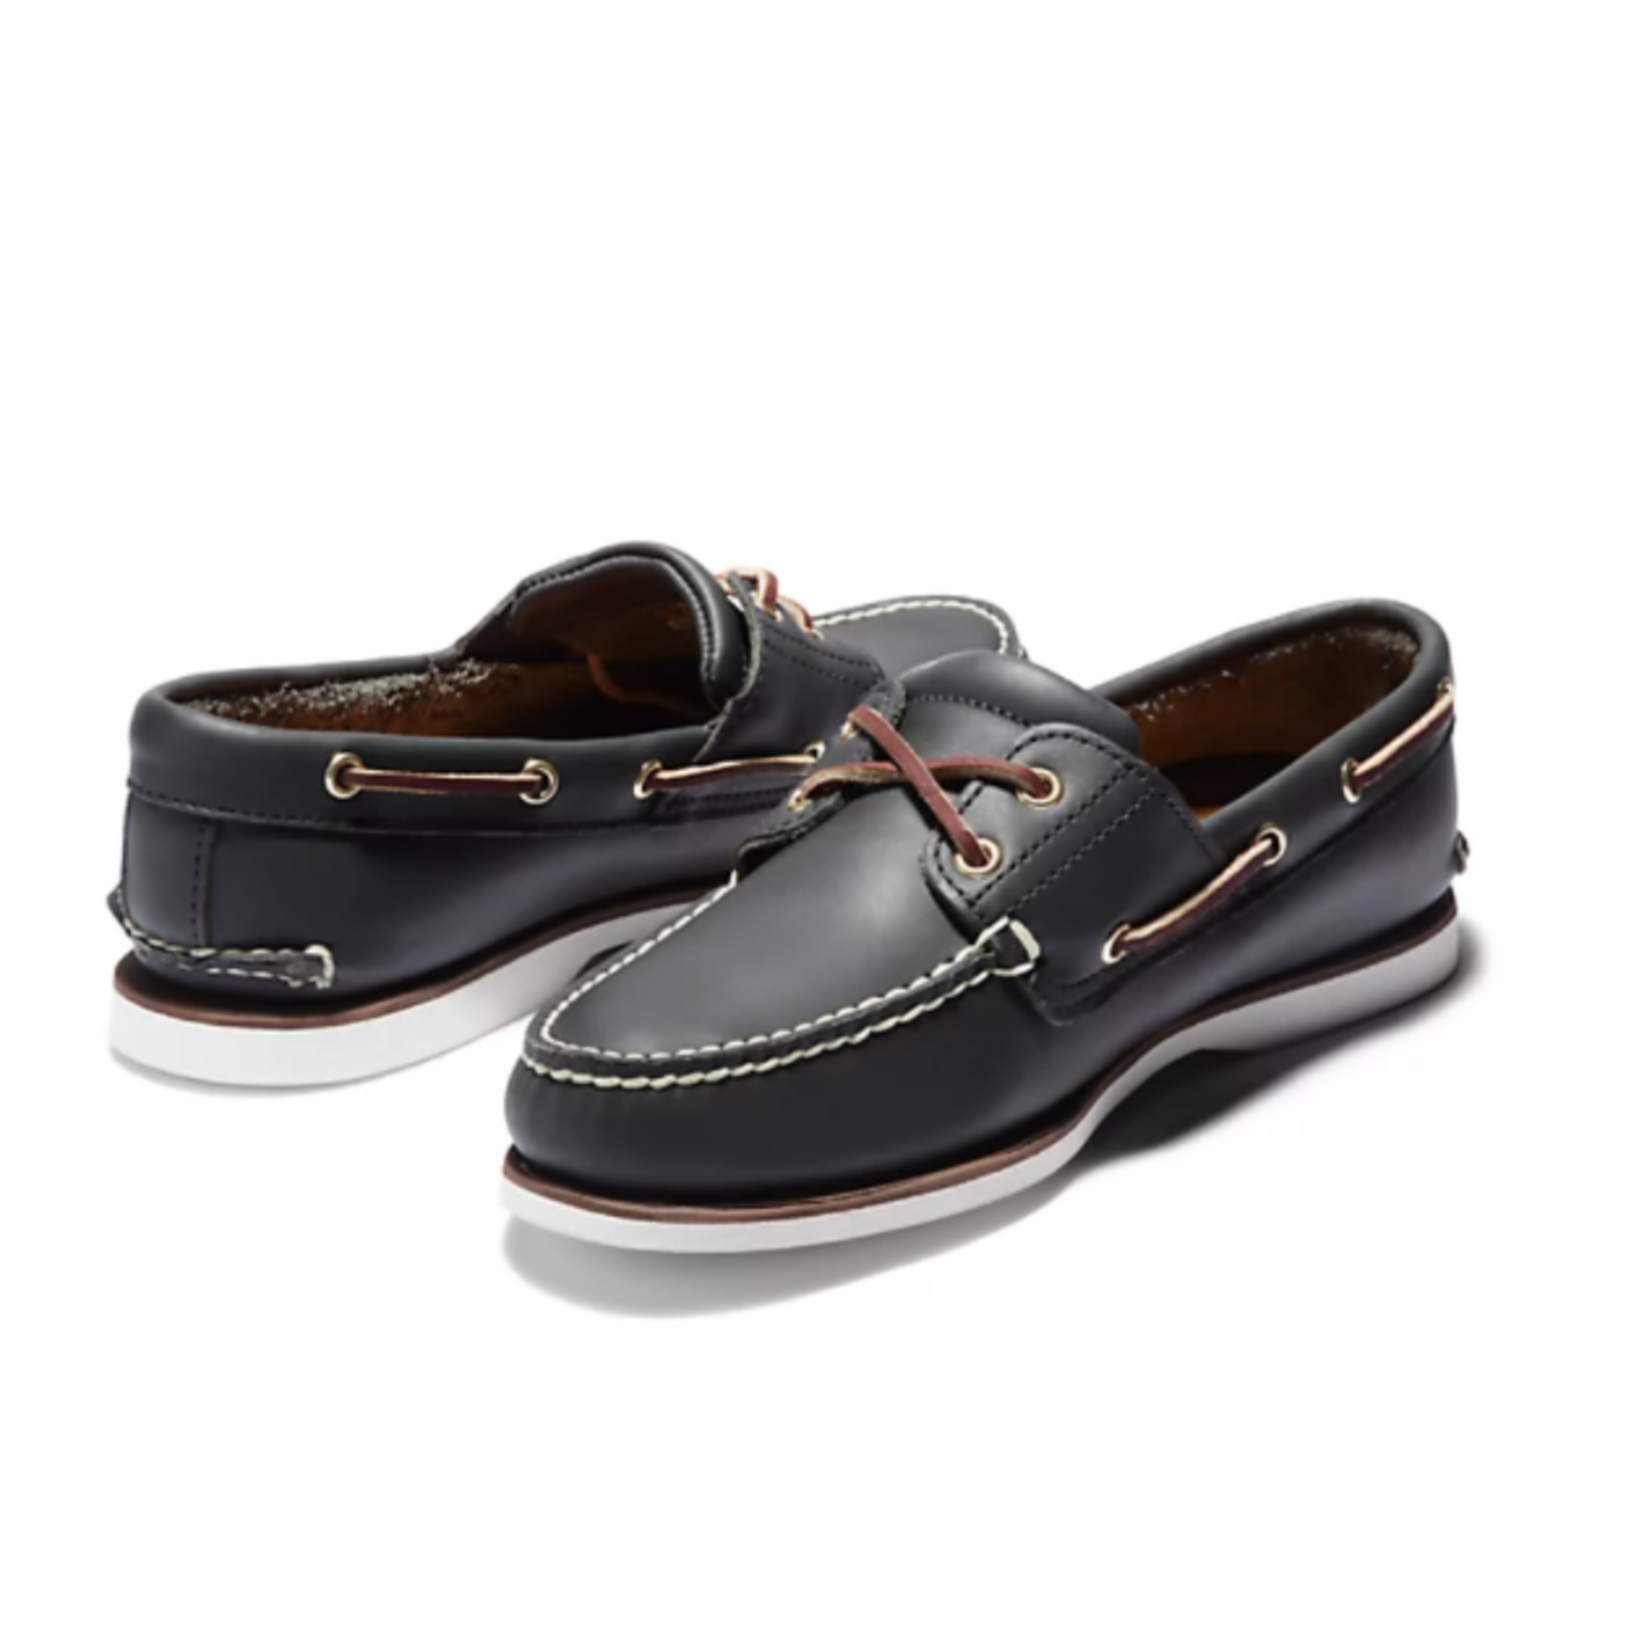 Timberland CLASSIC BOAT SHOE FOR MEN IN BLUE